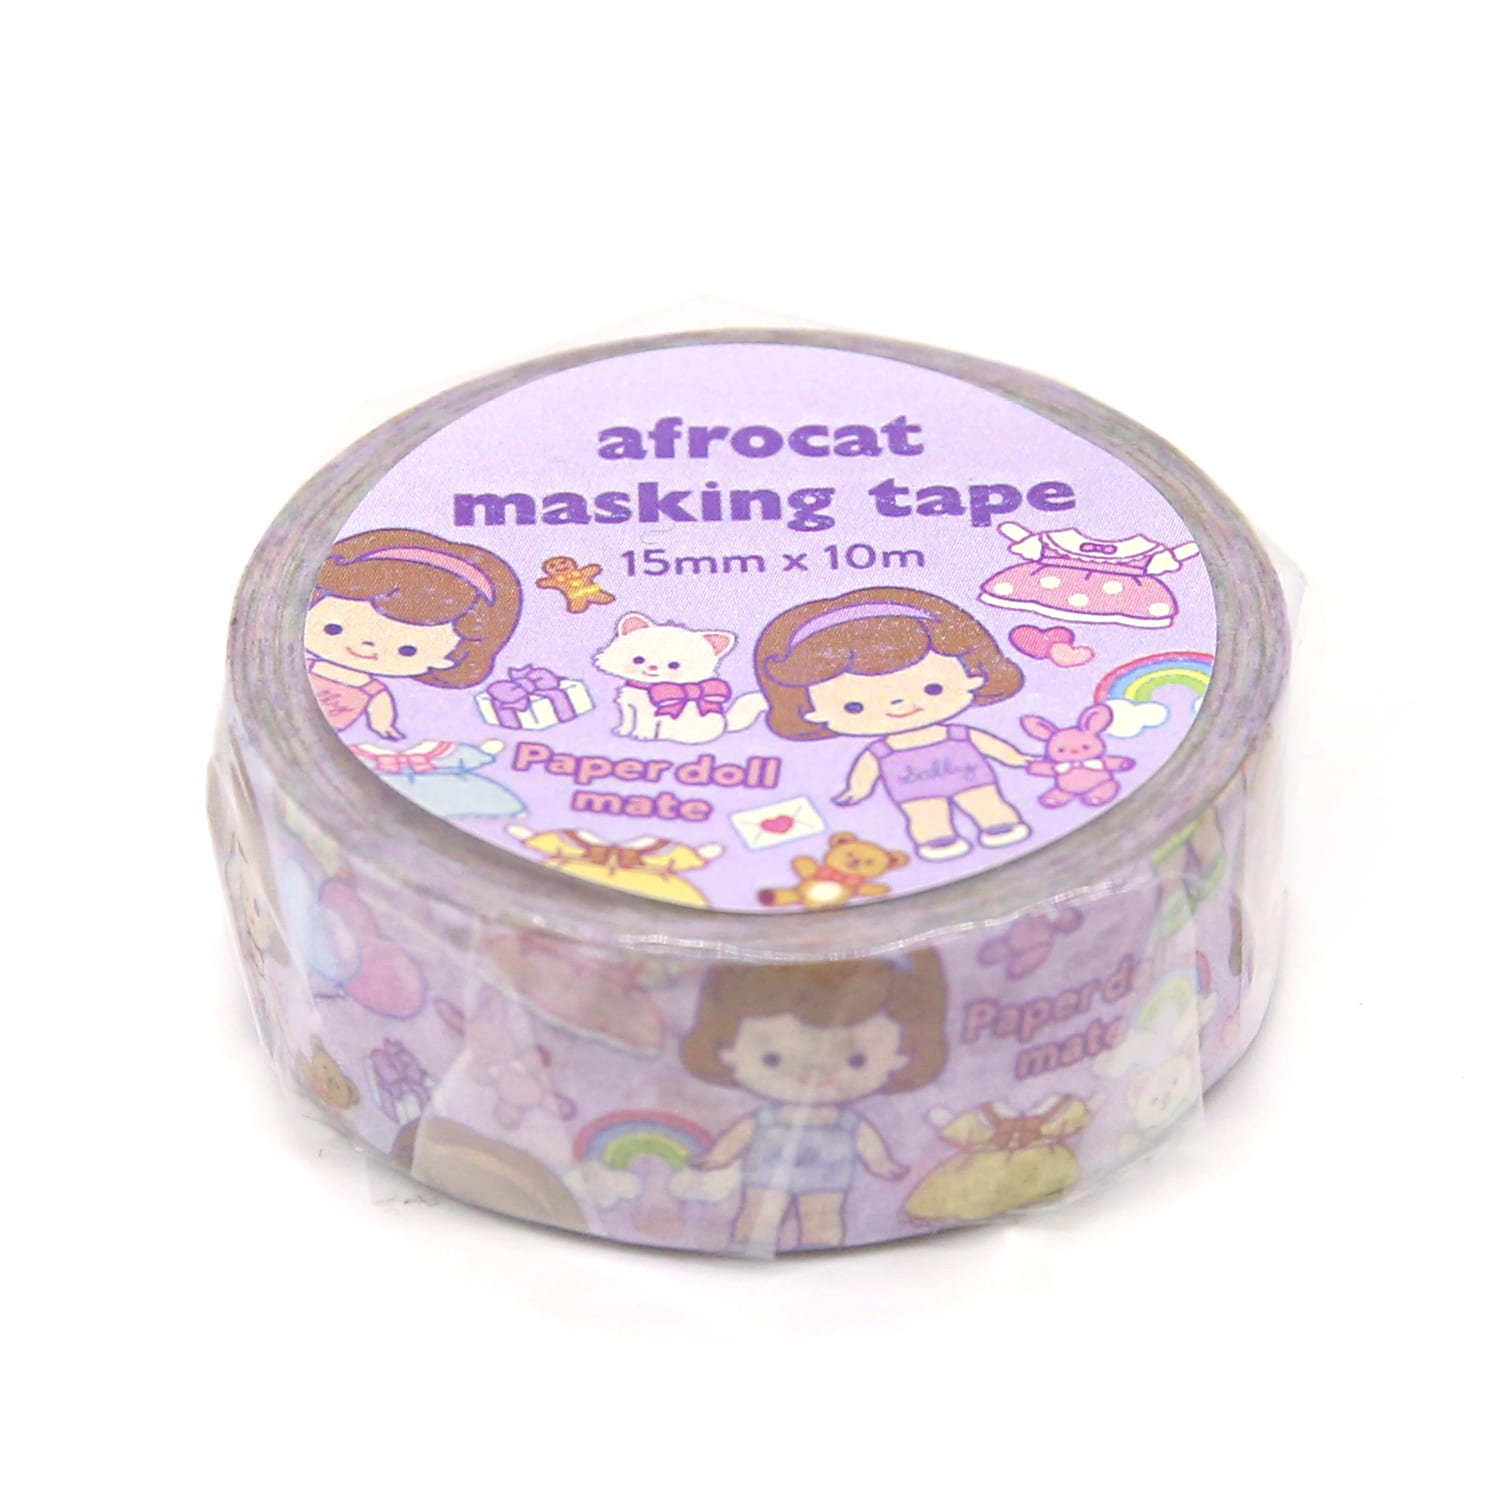 [afrocat masking tape] 18. Paper doll mate_minime  sally 15mm